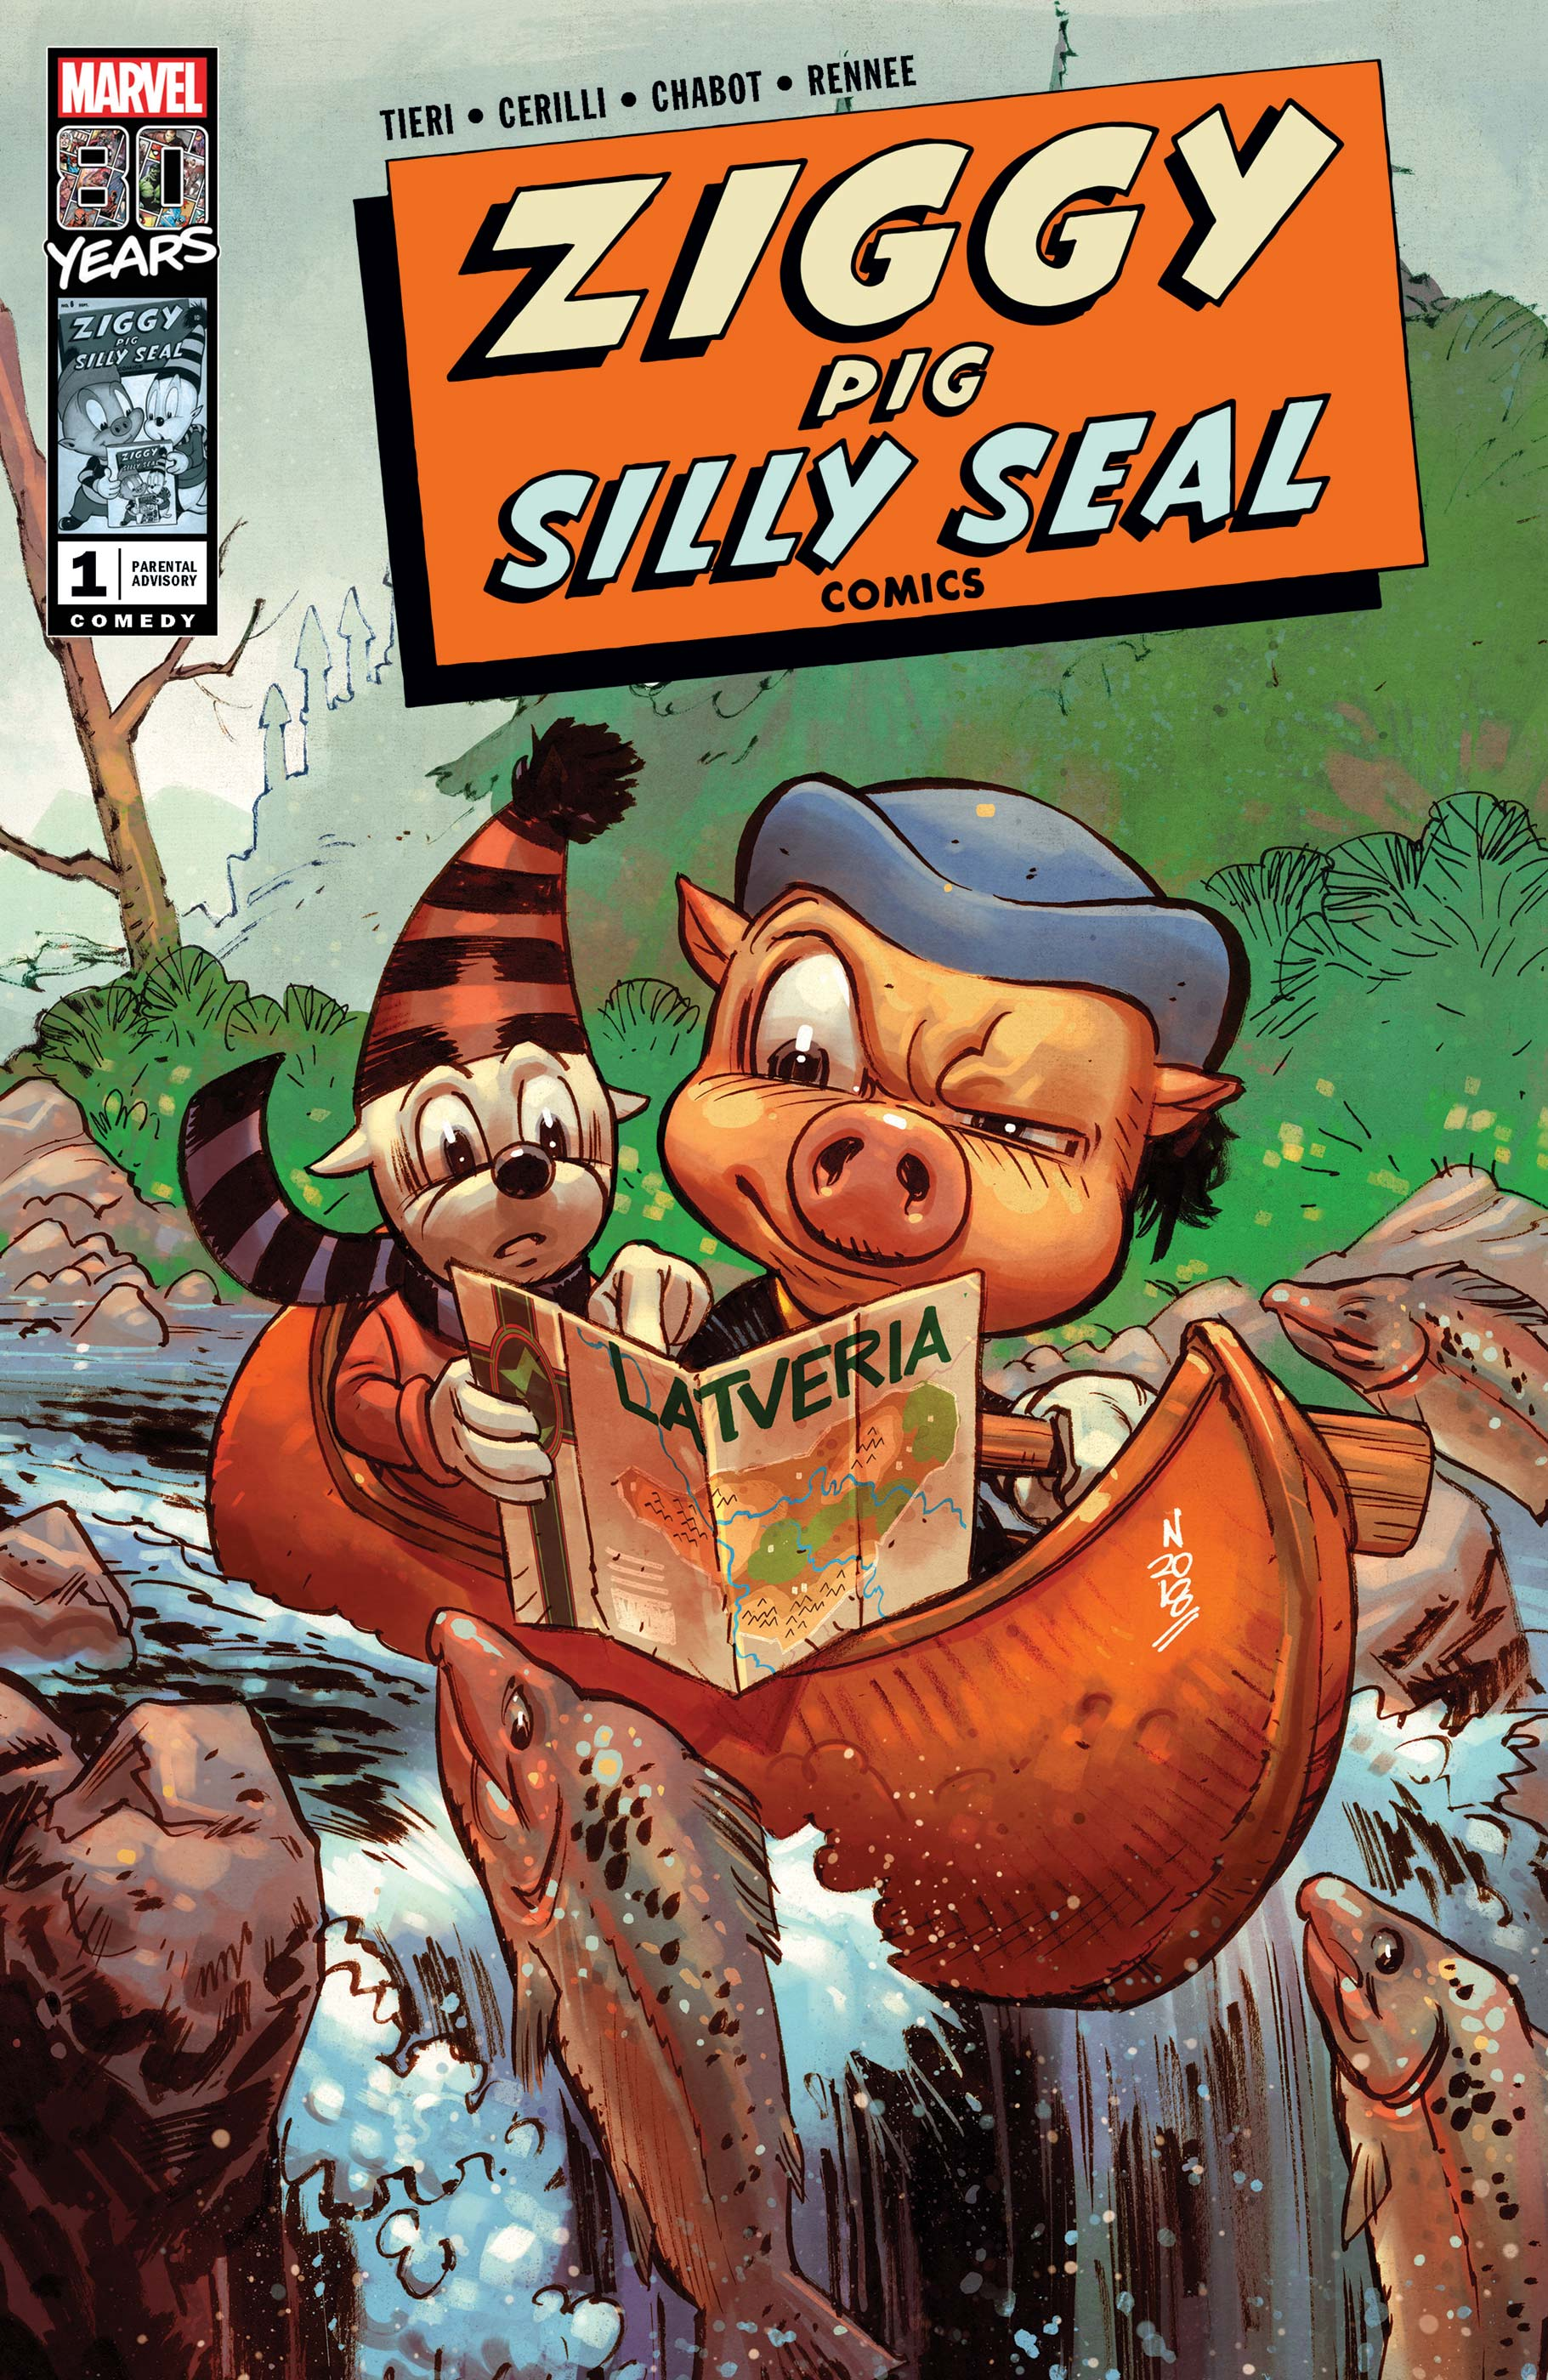 Ziggy Pig - Silly Seal Comics (2019) #1